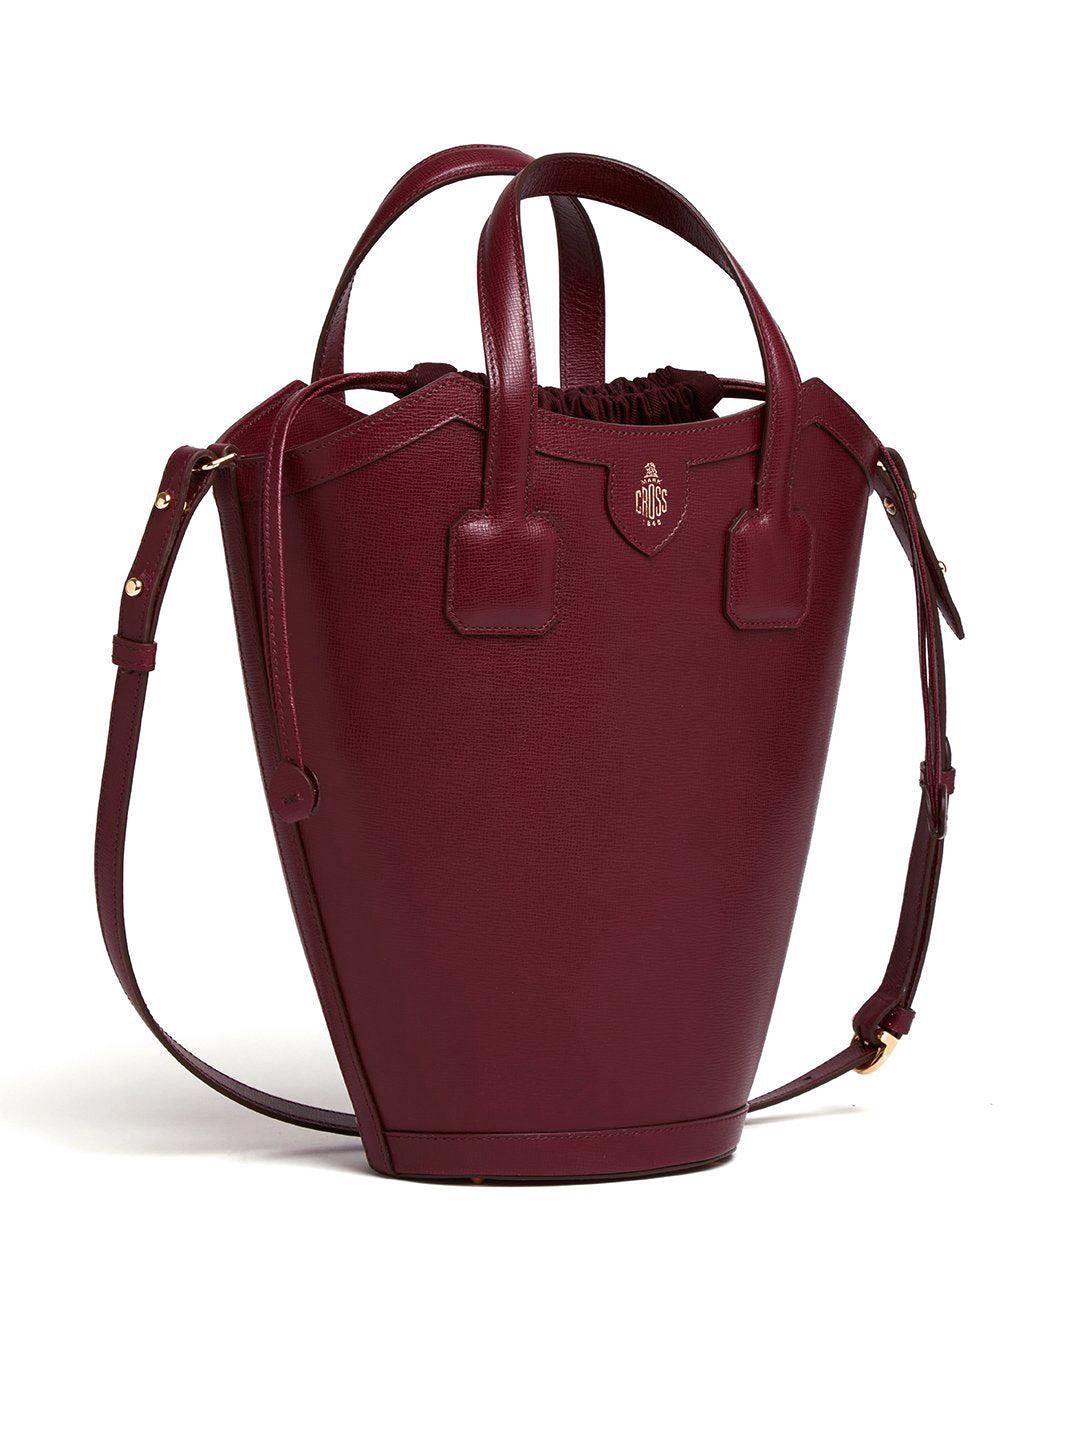 Madeline Leather Bucket Bag